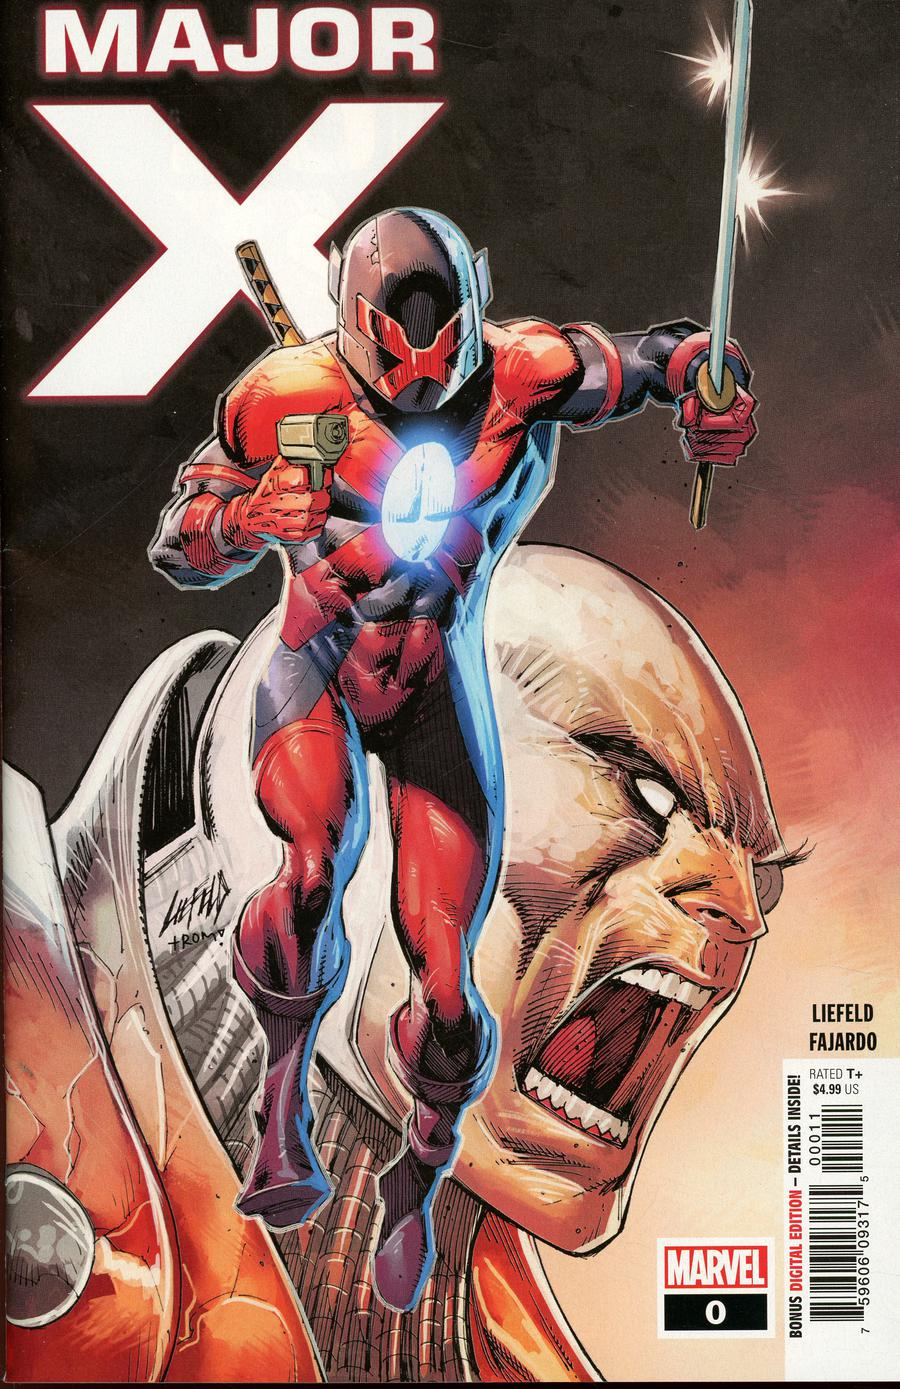 Major X #0 Cover A Regular Rob Liefeld Cover